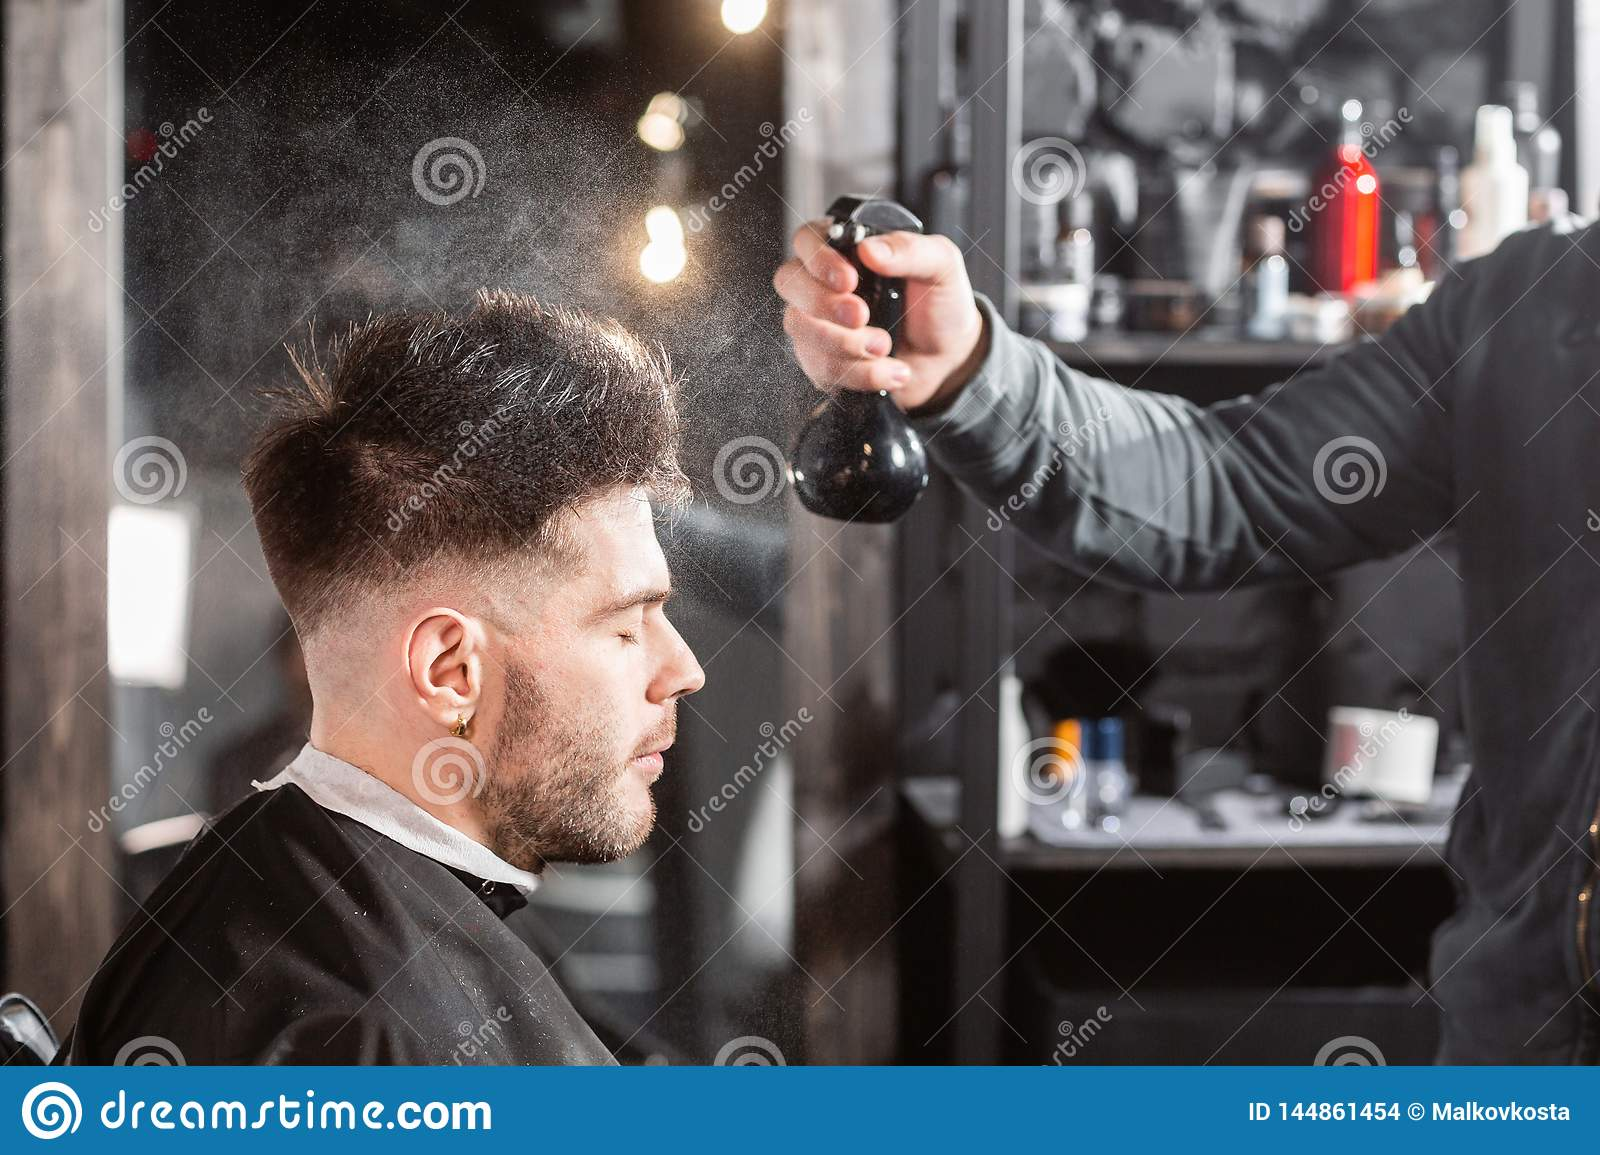 Barber sprays clean water on head in barbershop. Professional trimmer tool cuts beard and hair on young guy in barber